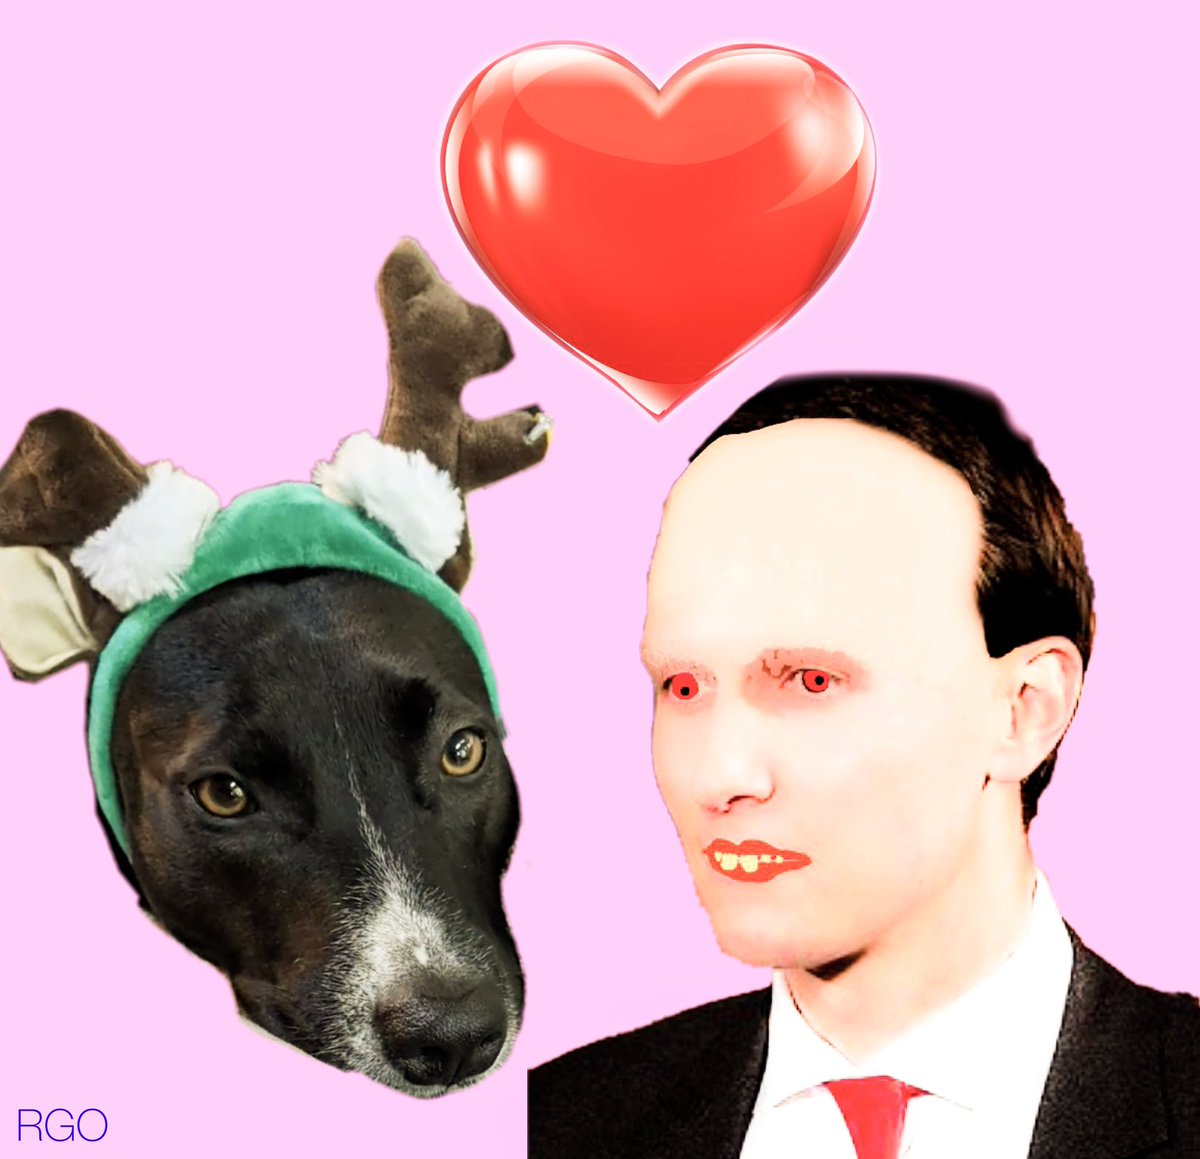 Jared remarries a border collie named Cha Cha #AfterTrump